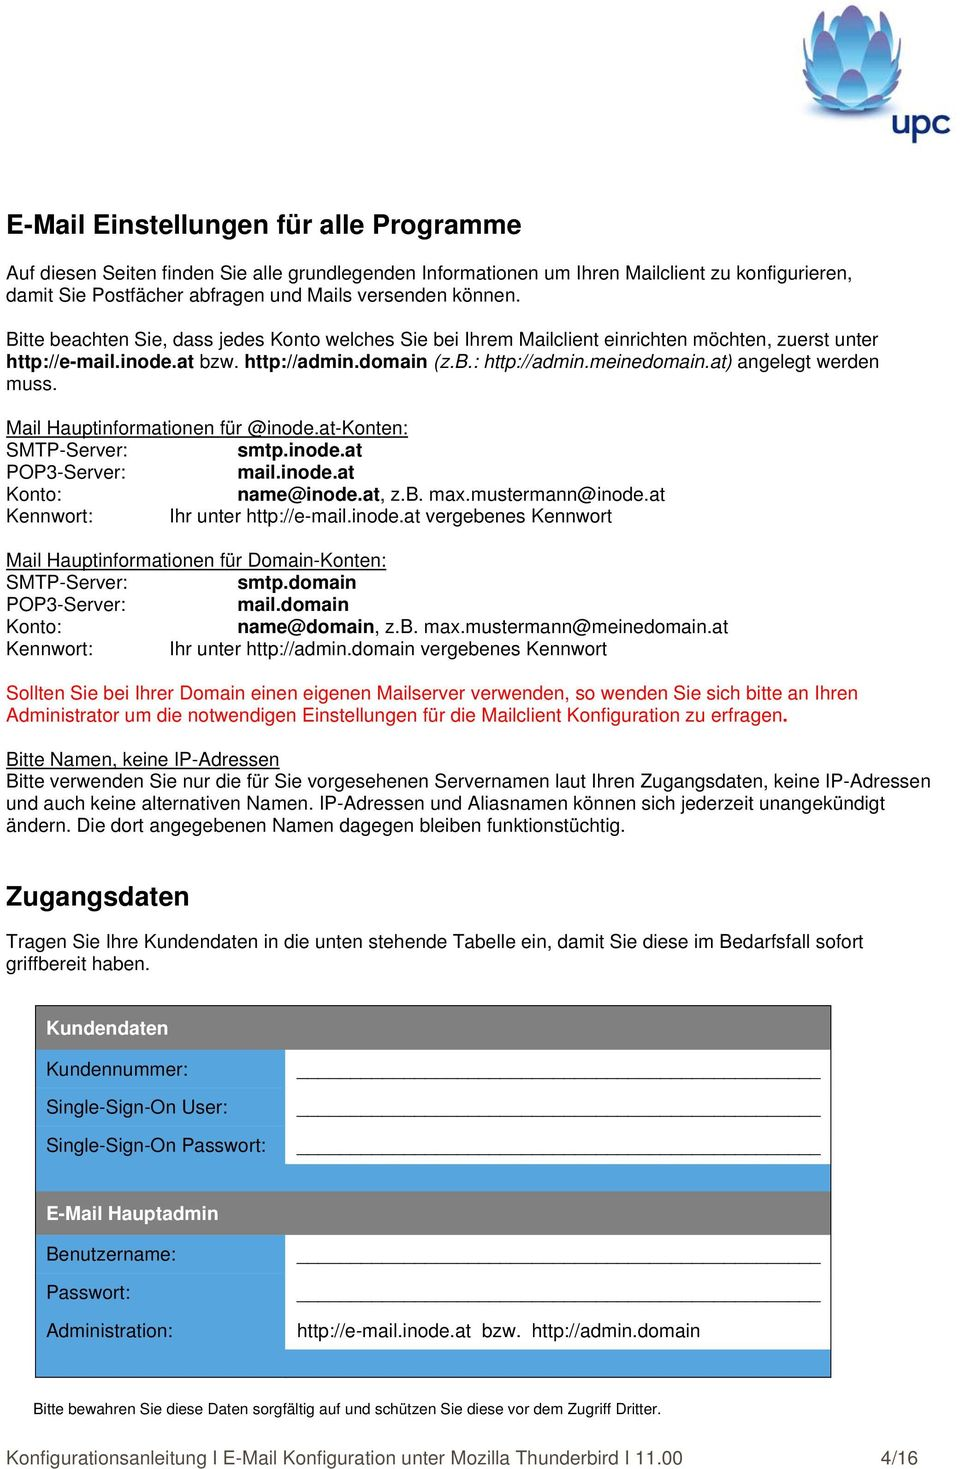 at) angelegt werden muss. Mail Hauptinformationen für @inode.at-konten: SMTP-Server: smtp.inode.at POP3-Server: mail.inode.at Konto: name@inode.at, z.b. max.mustermann@inode.